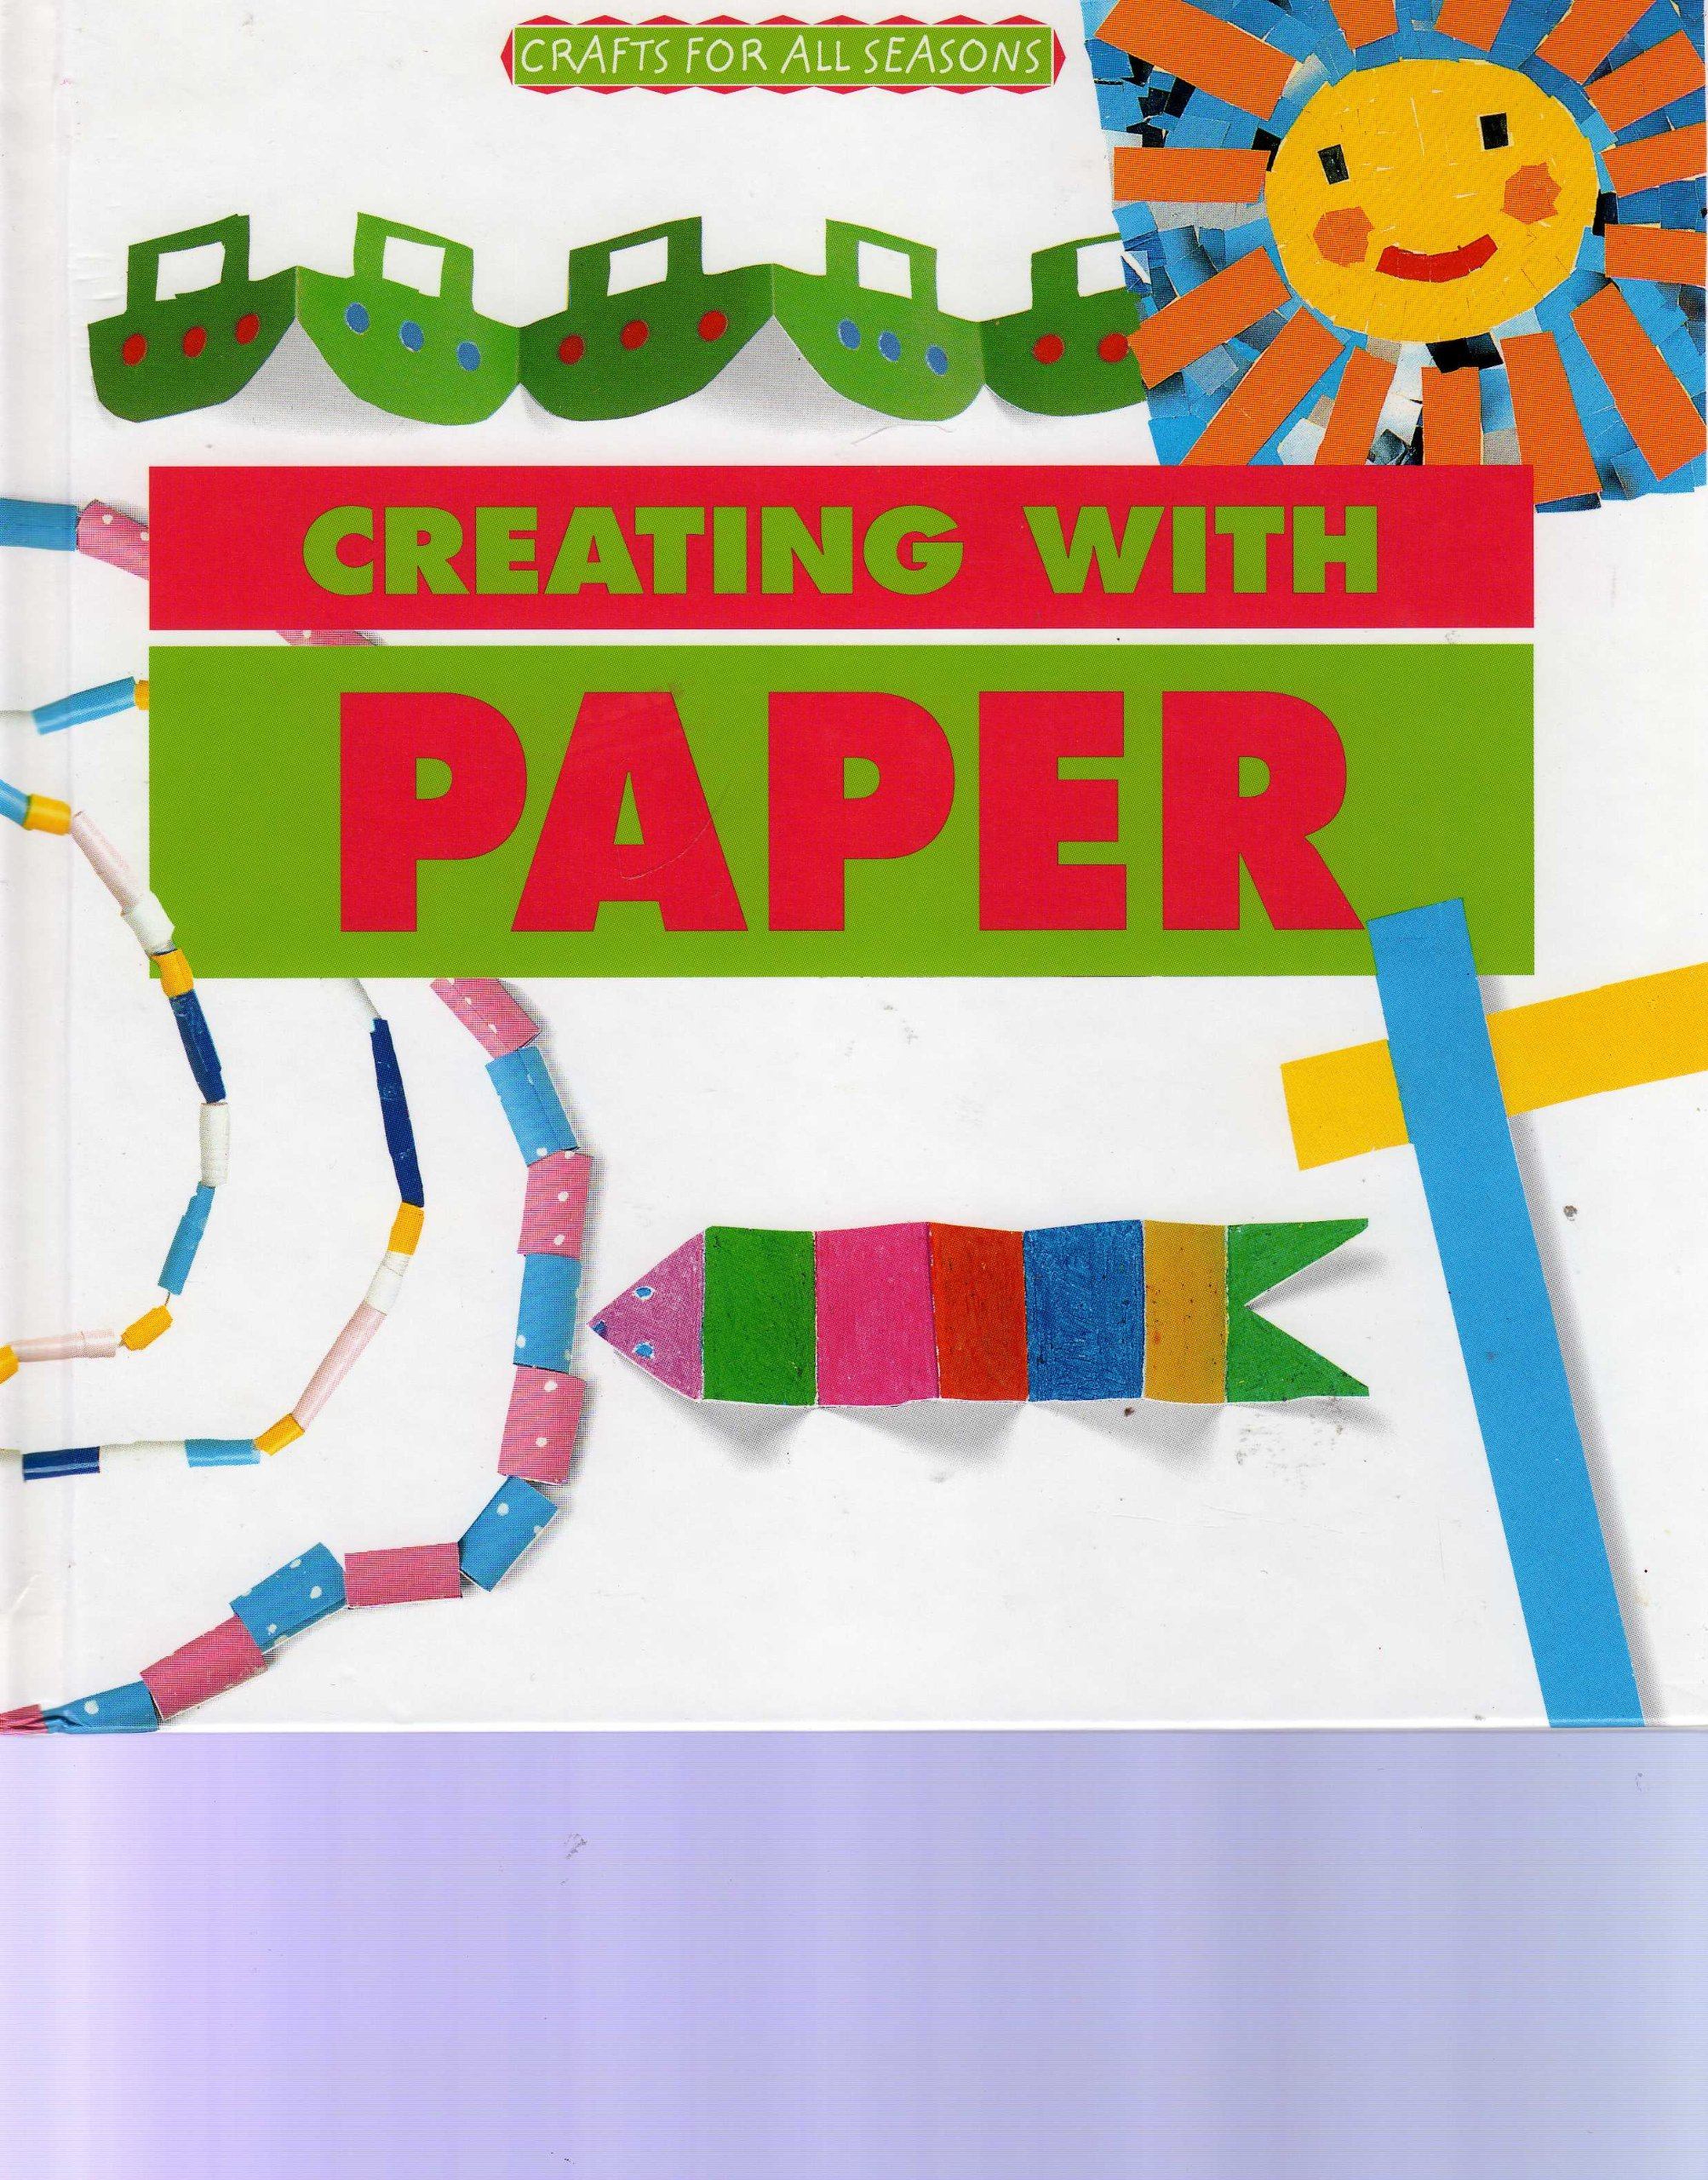 Crafts for All Seasons - Creating with Paper